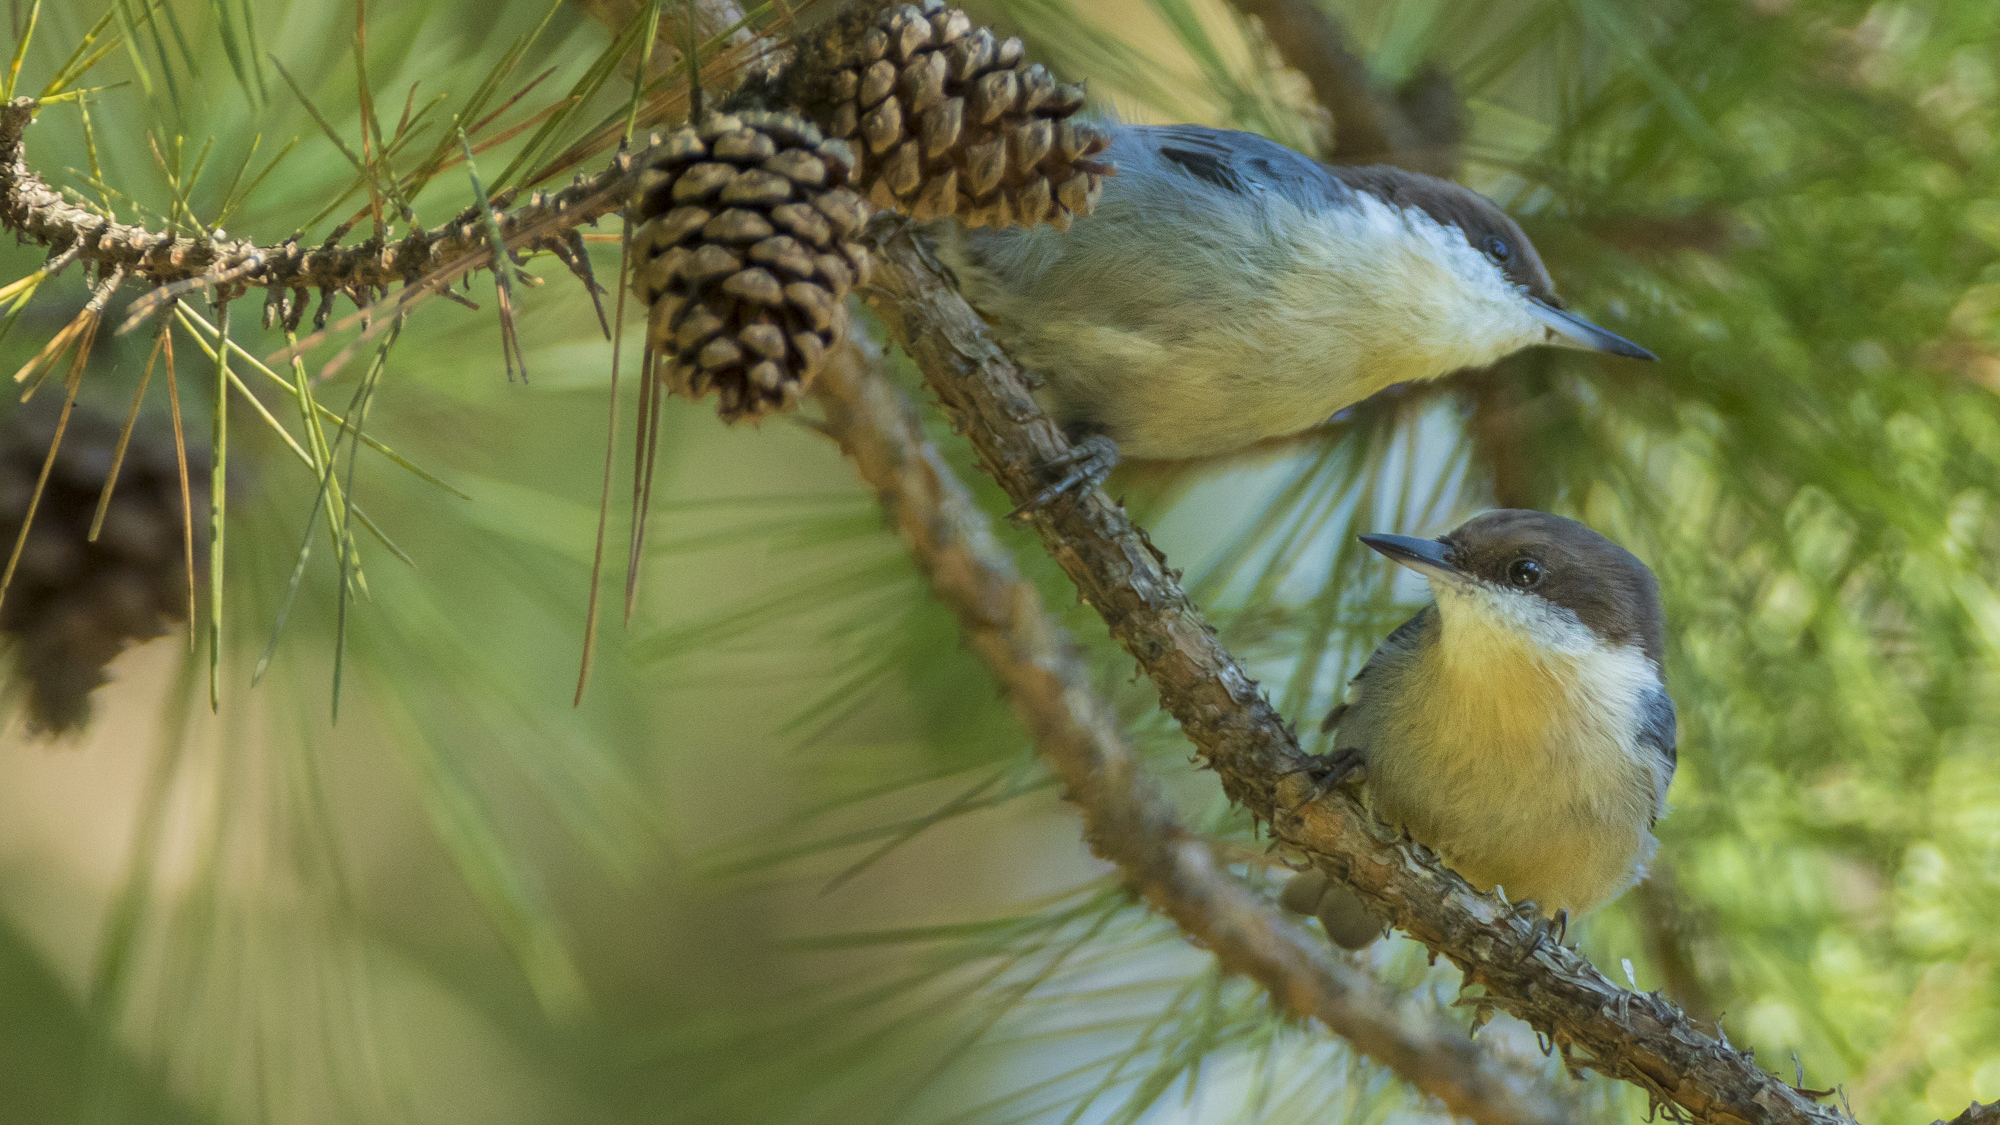 This is a picture of two brown-headed nuthatches